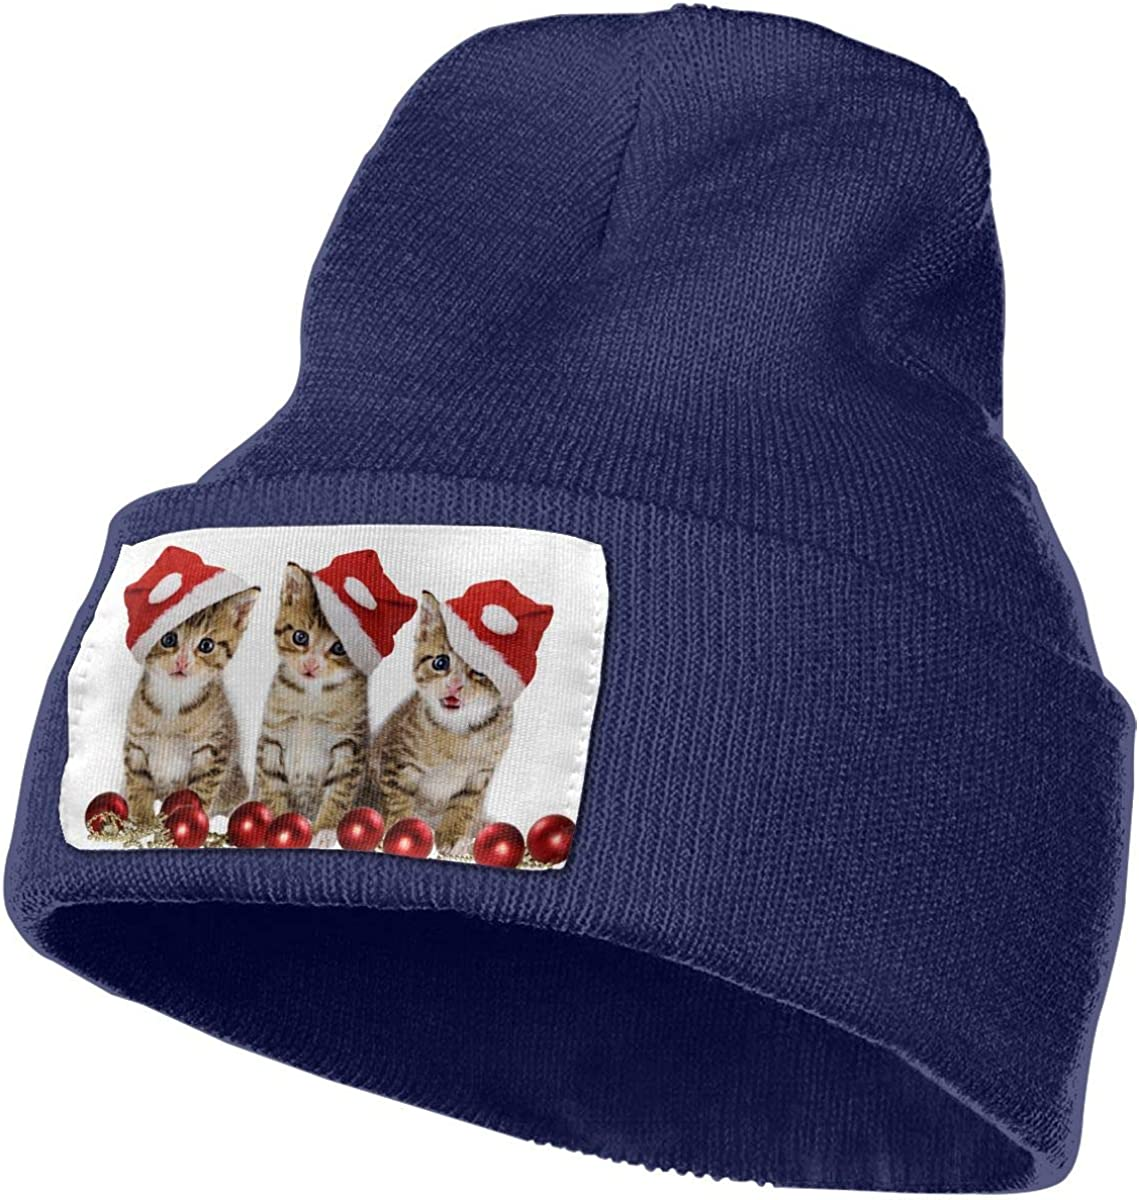 Retired See You On The Beach Wool Cap Skull Caps Unisex Winter